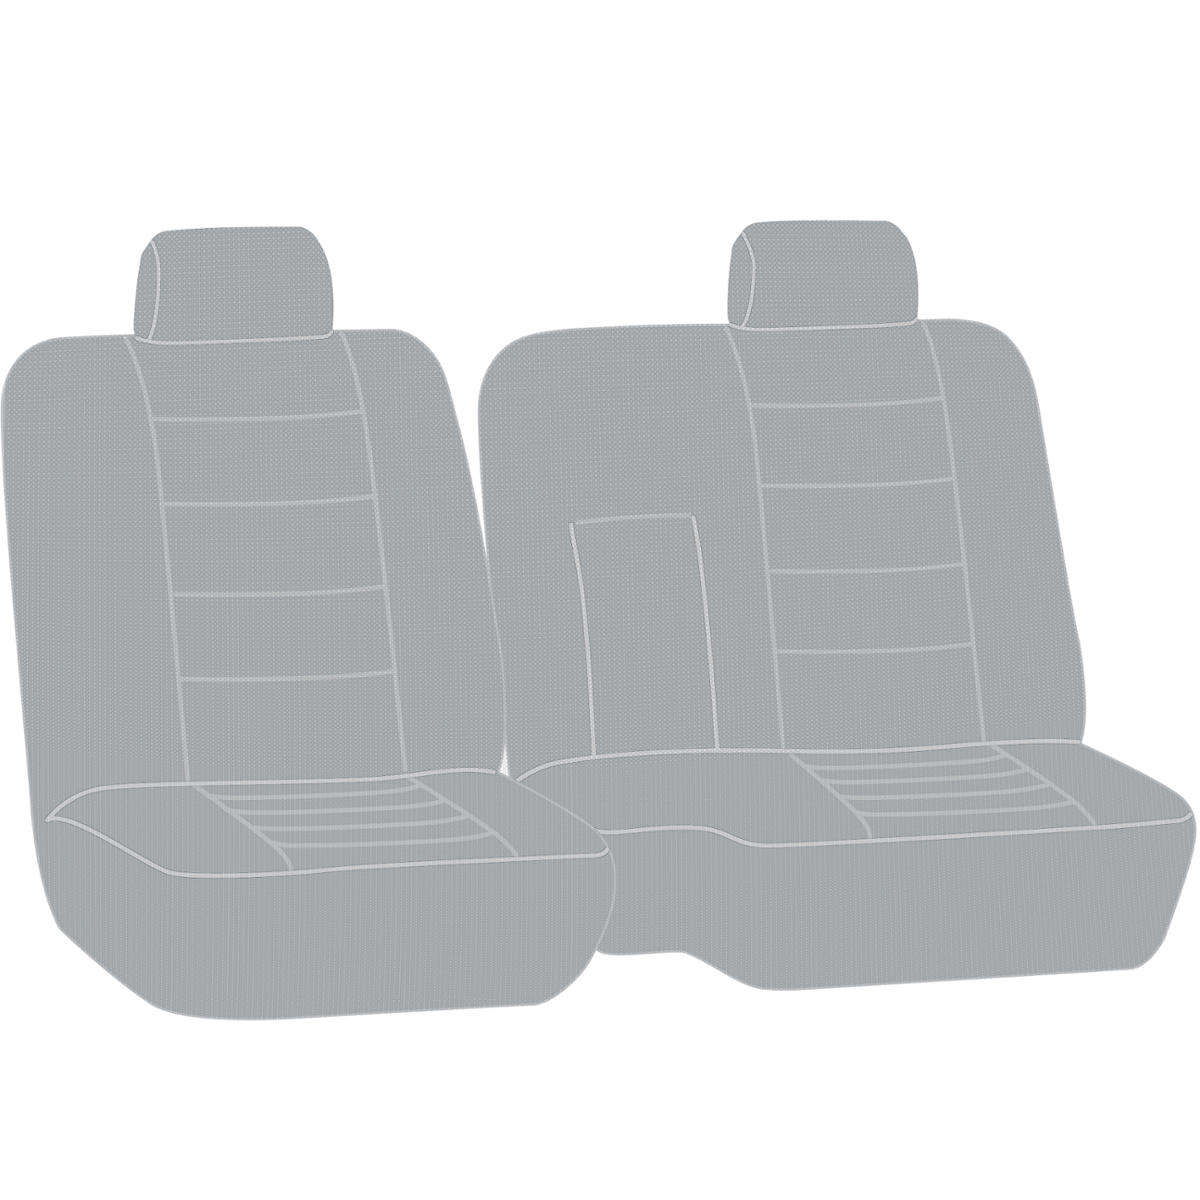 Admirable 40 60 Split Bench Seat Covers Nyc City Caraccident5 Cool Chair Designs And Ideas Caraccident5Info